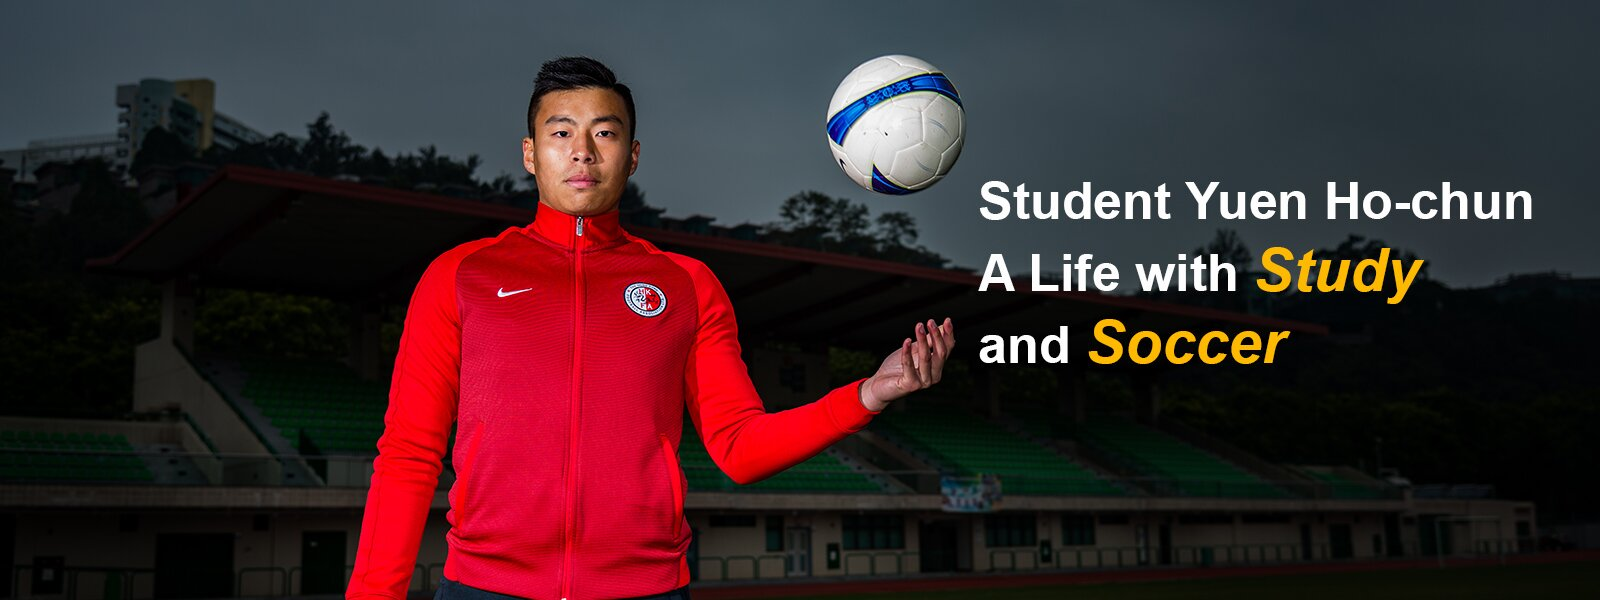 Student Yuen Ho-chun: A Life with Study and Soccer